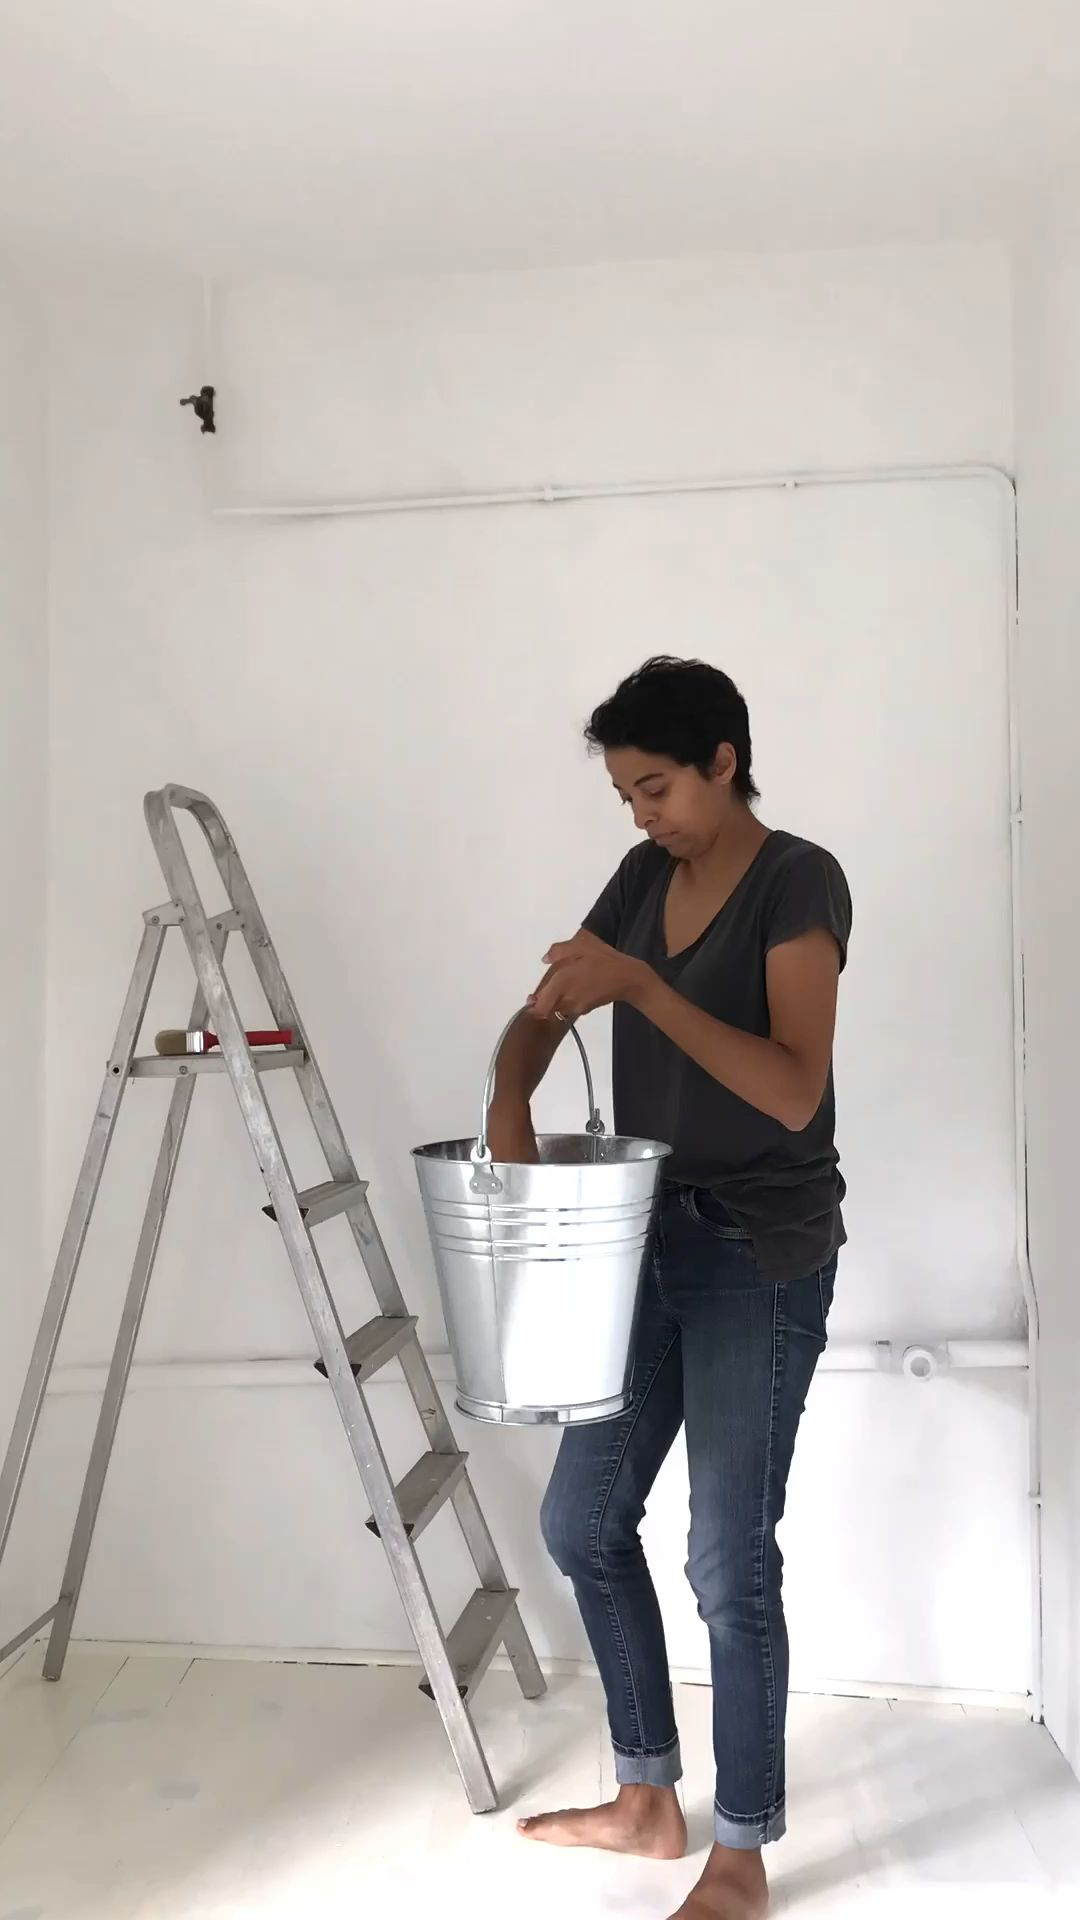 How To Use Natural Eco Limewash Paint by Bauwerk